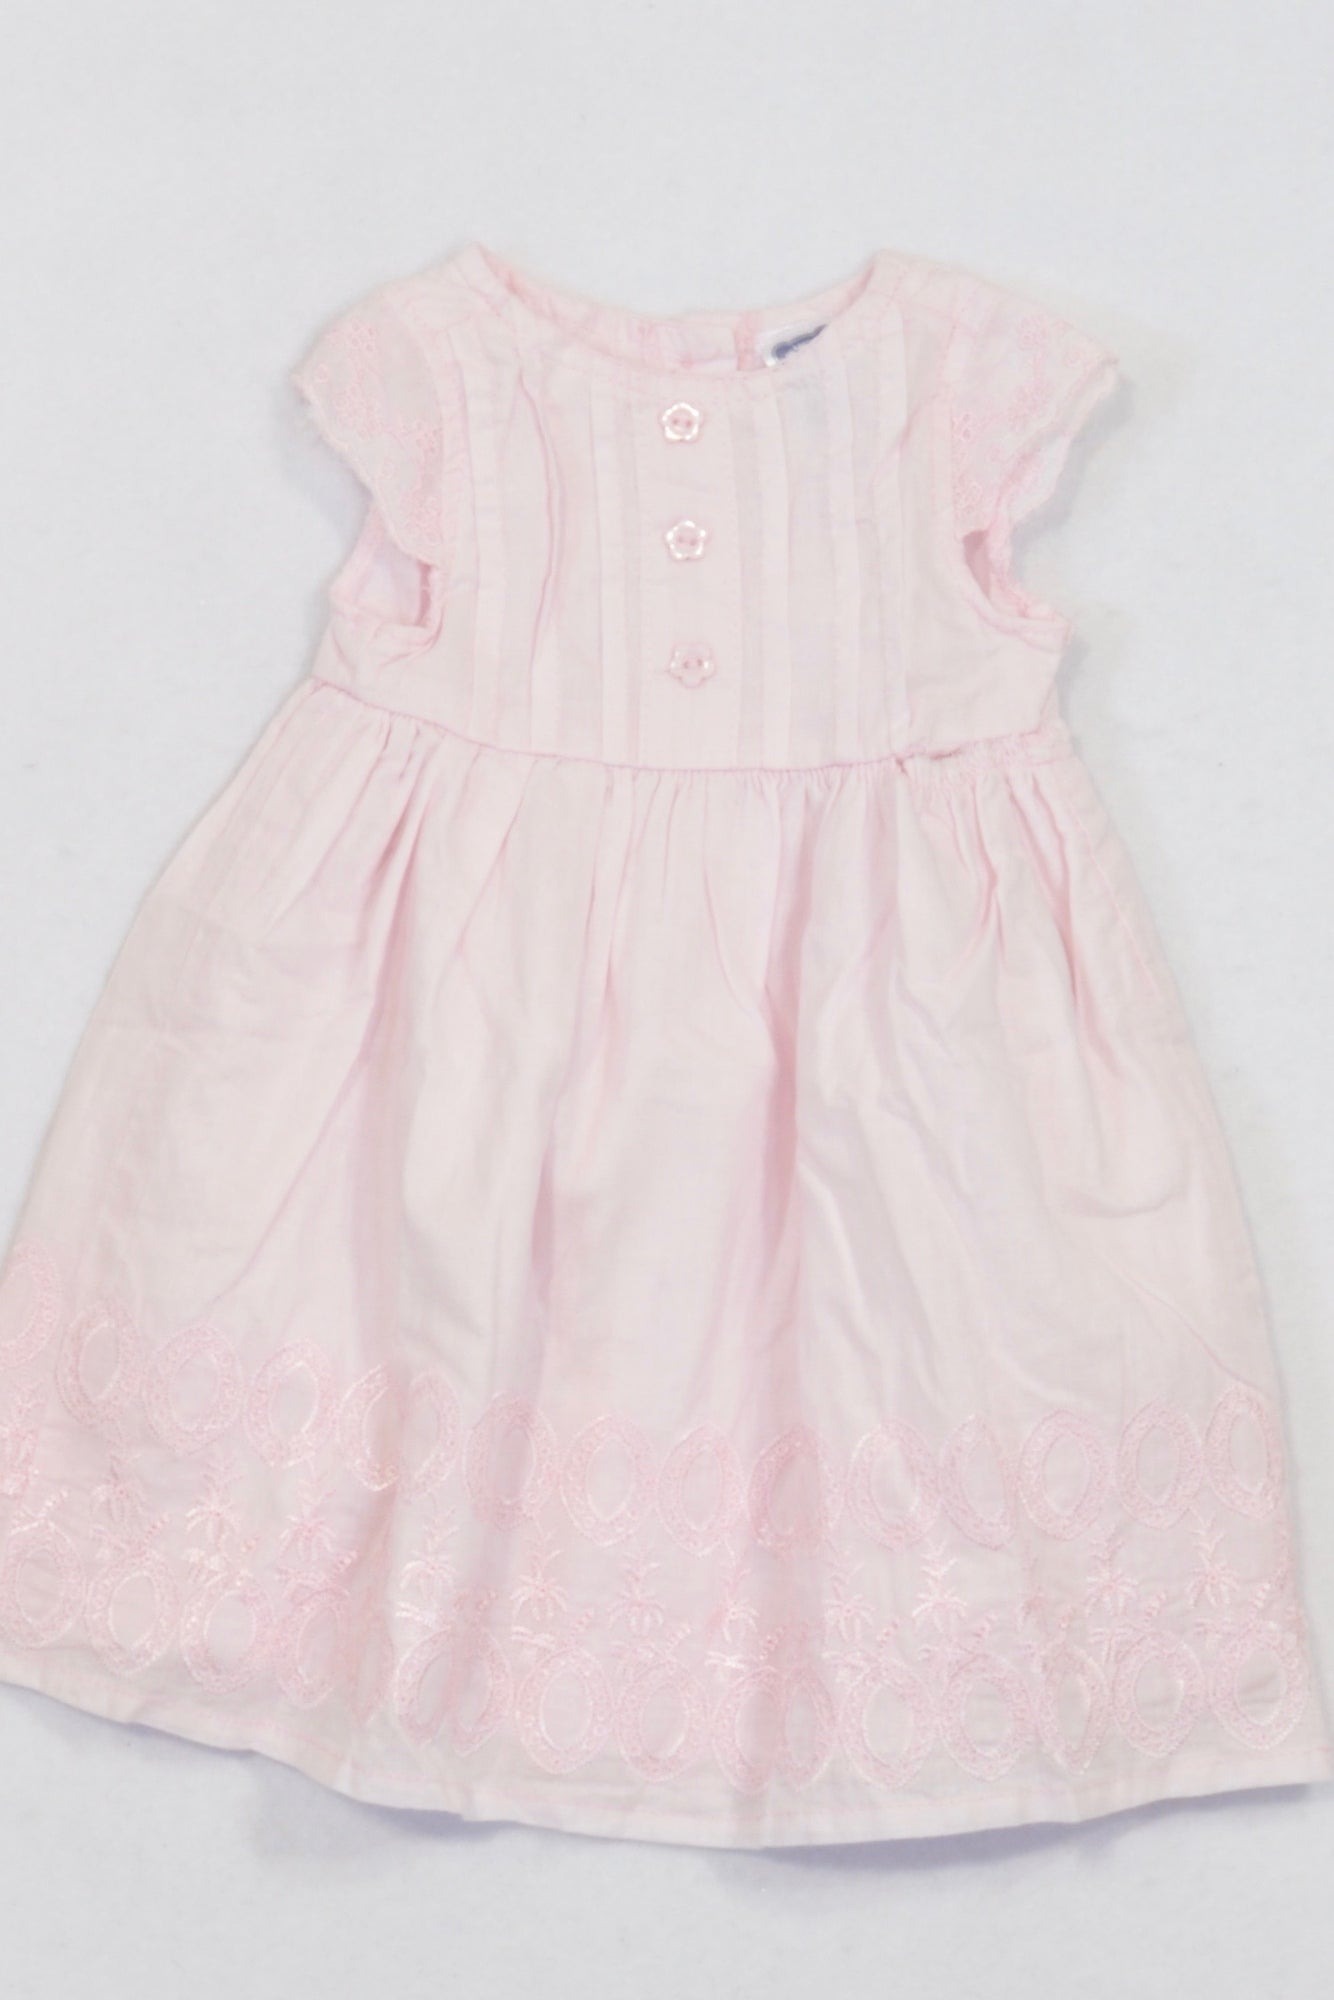 Ackermans Pink Embroidered Flower Button Lined Dress Girls 0-3 months